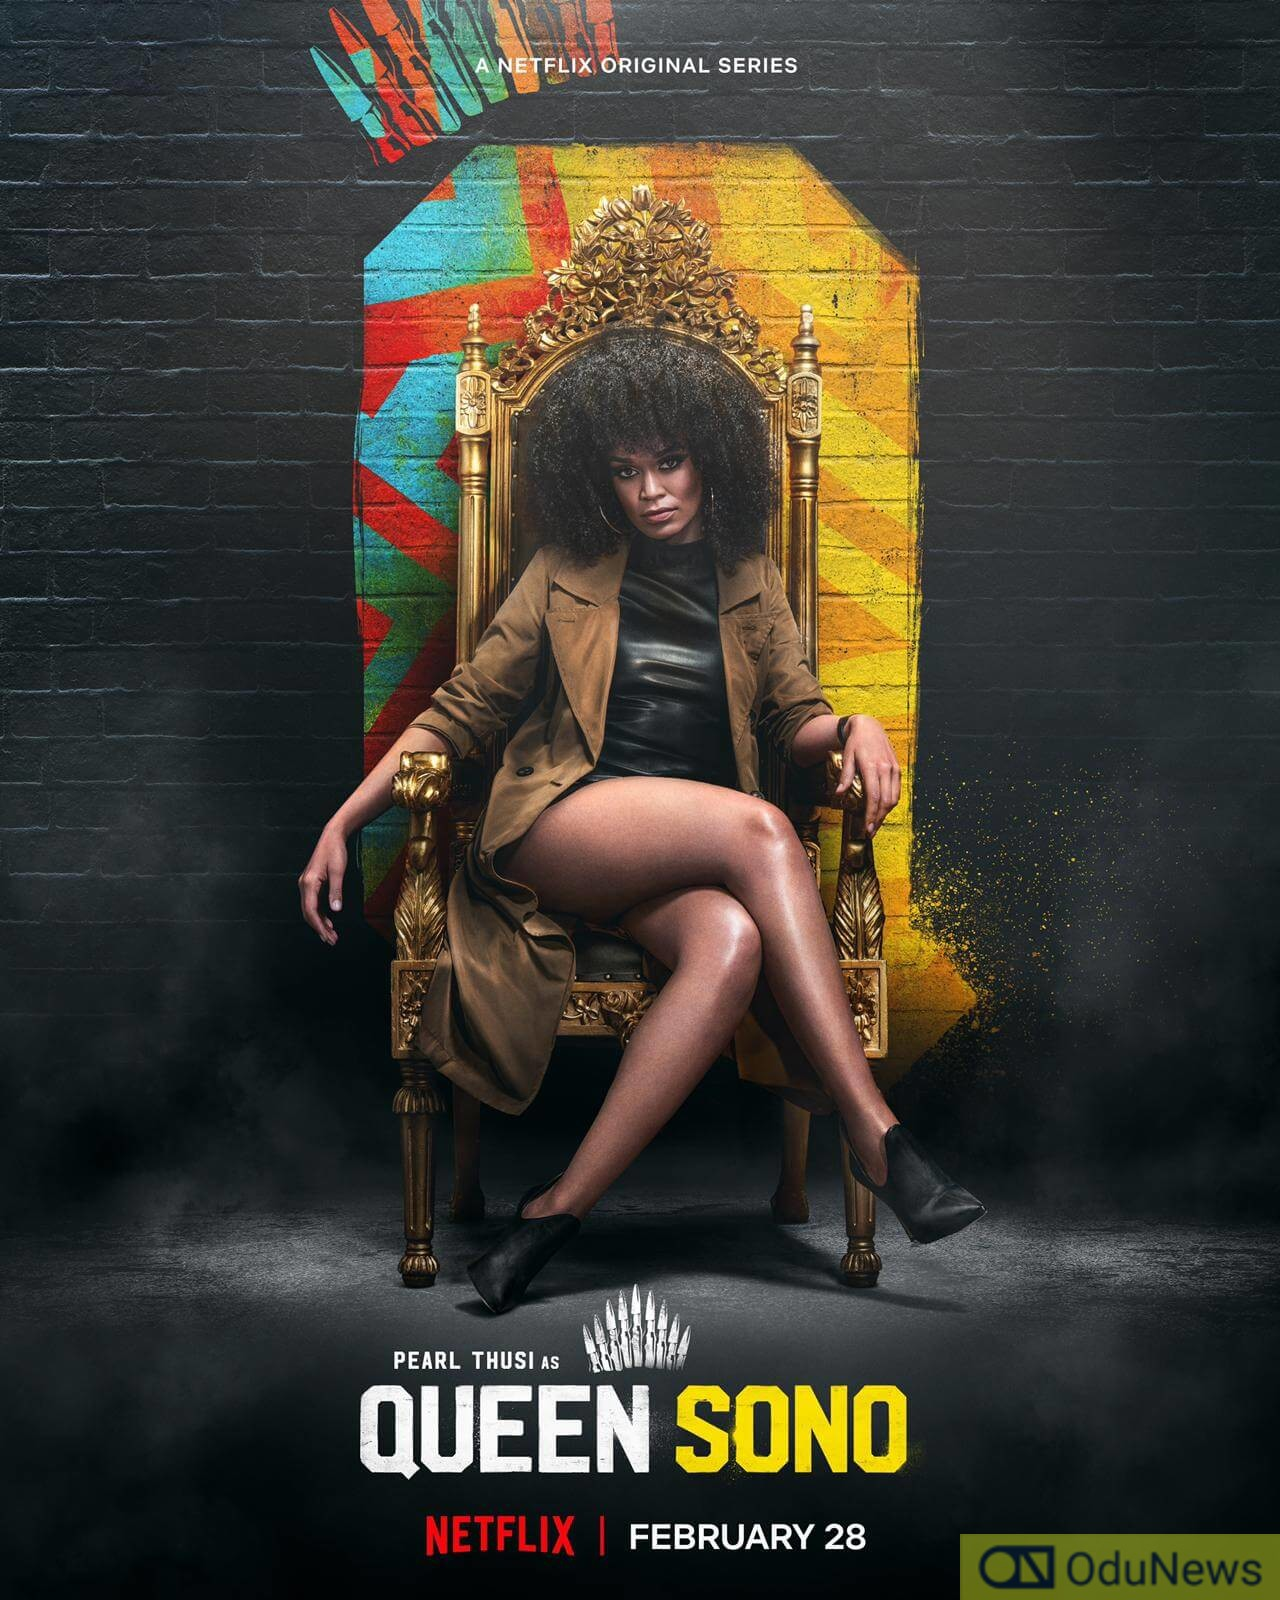 QUEEN SONO doesn't go beyond its expected entertainment value